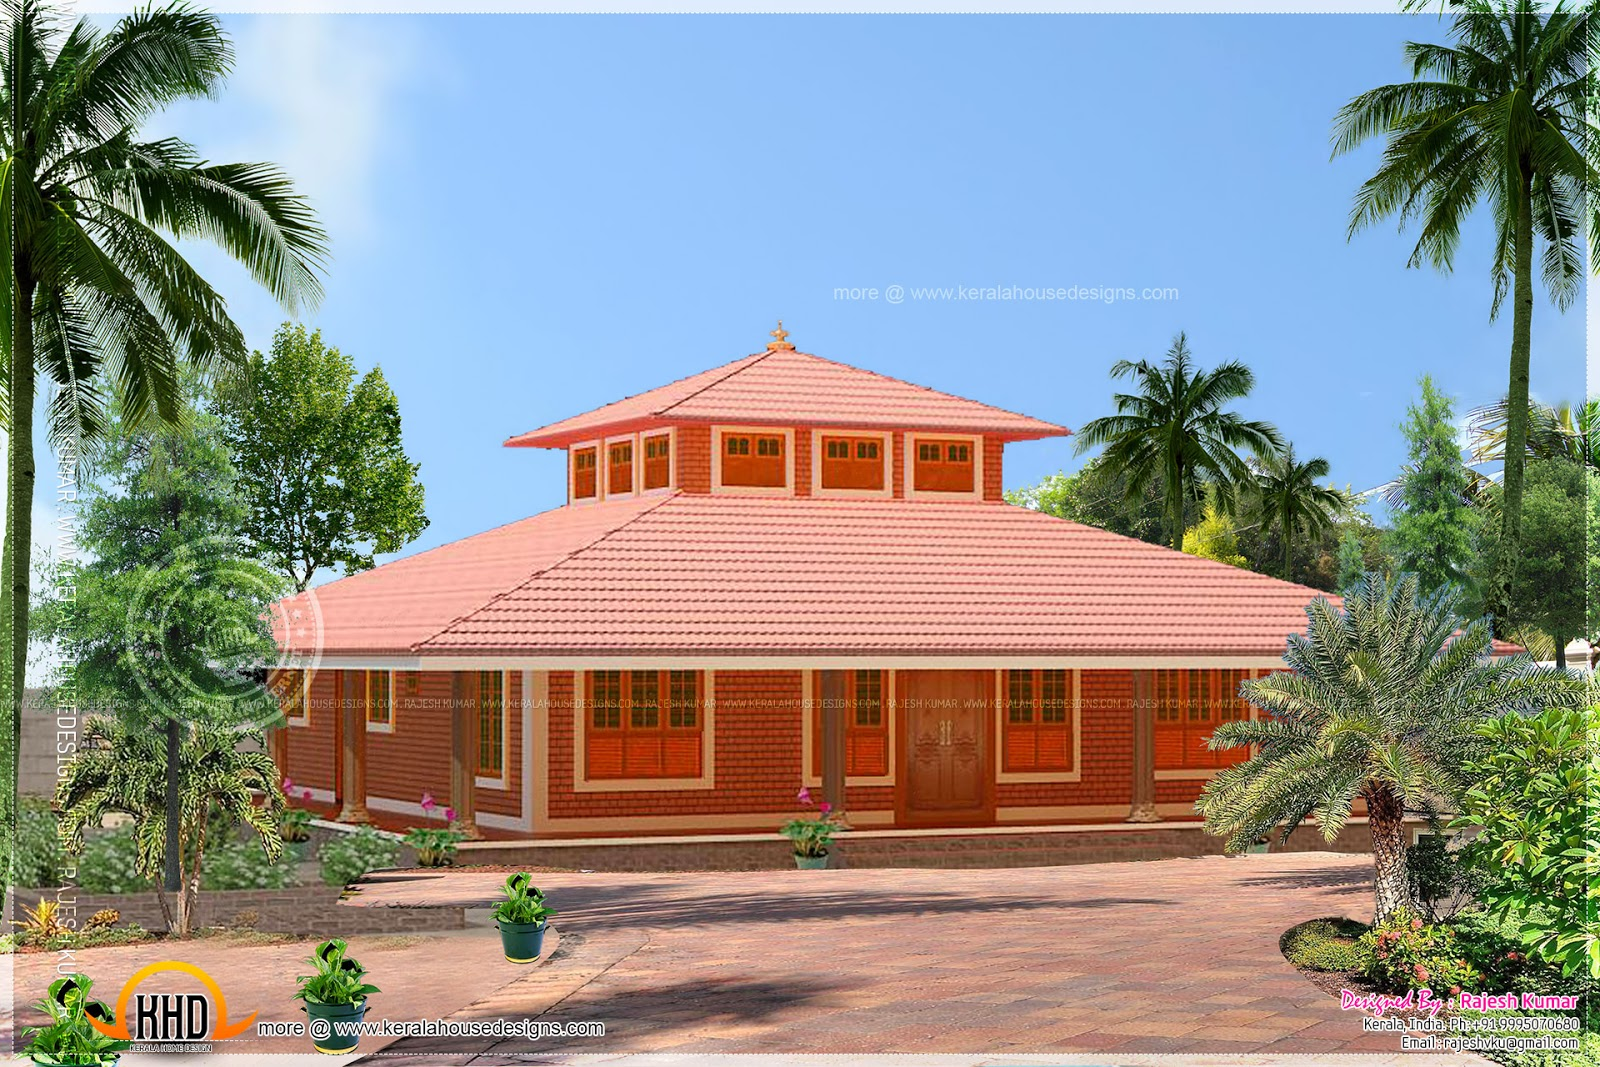 Single storied low cost brick home design kerala home Low cost interior design for homes in kerala